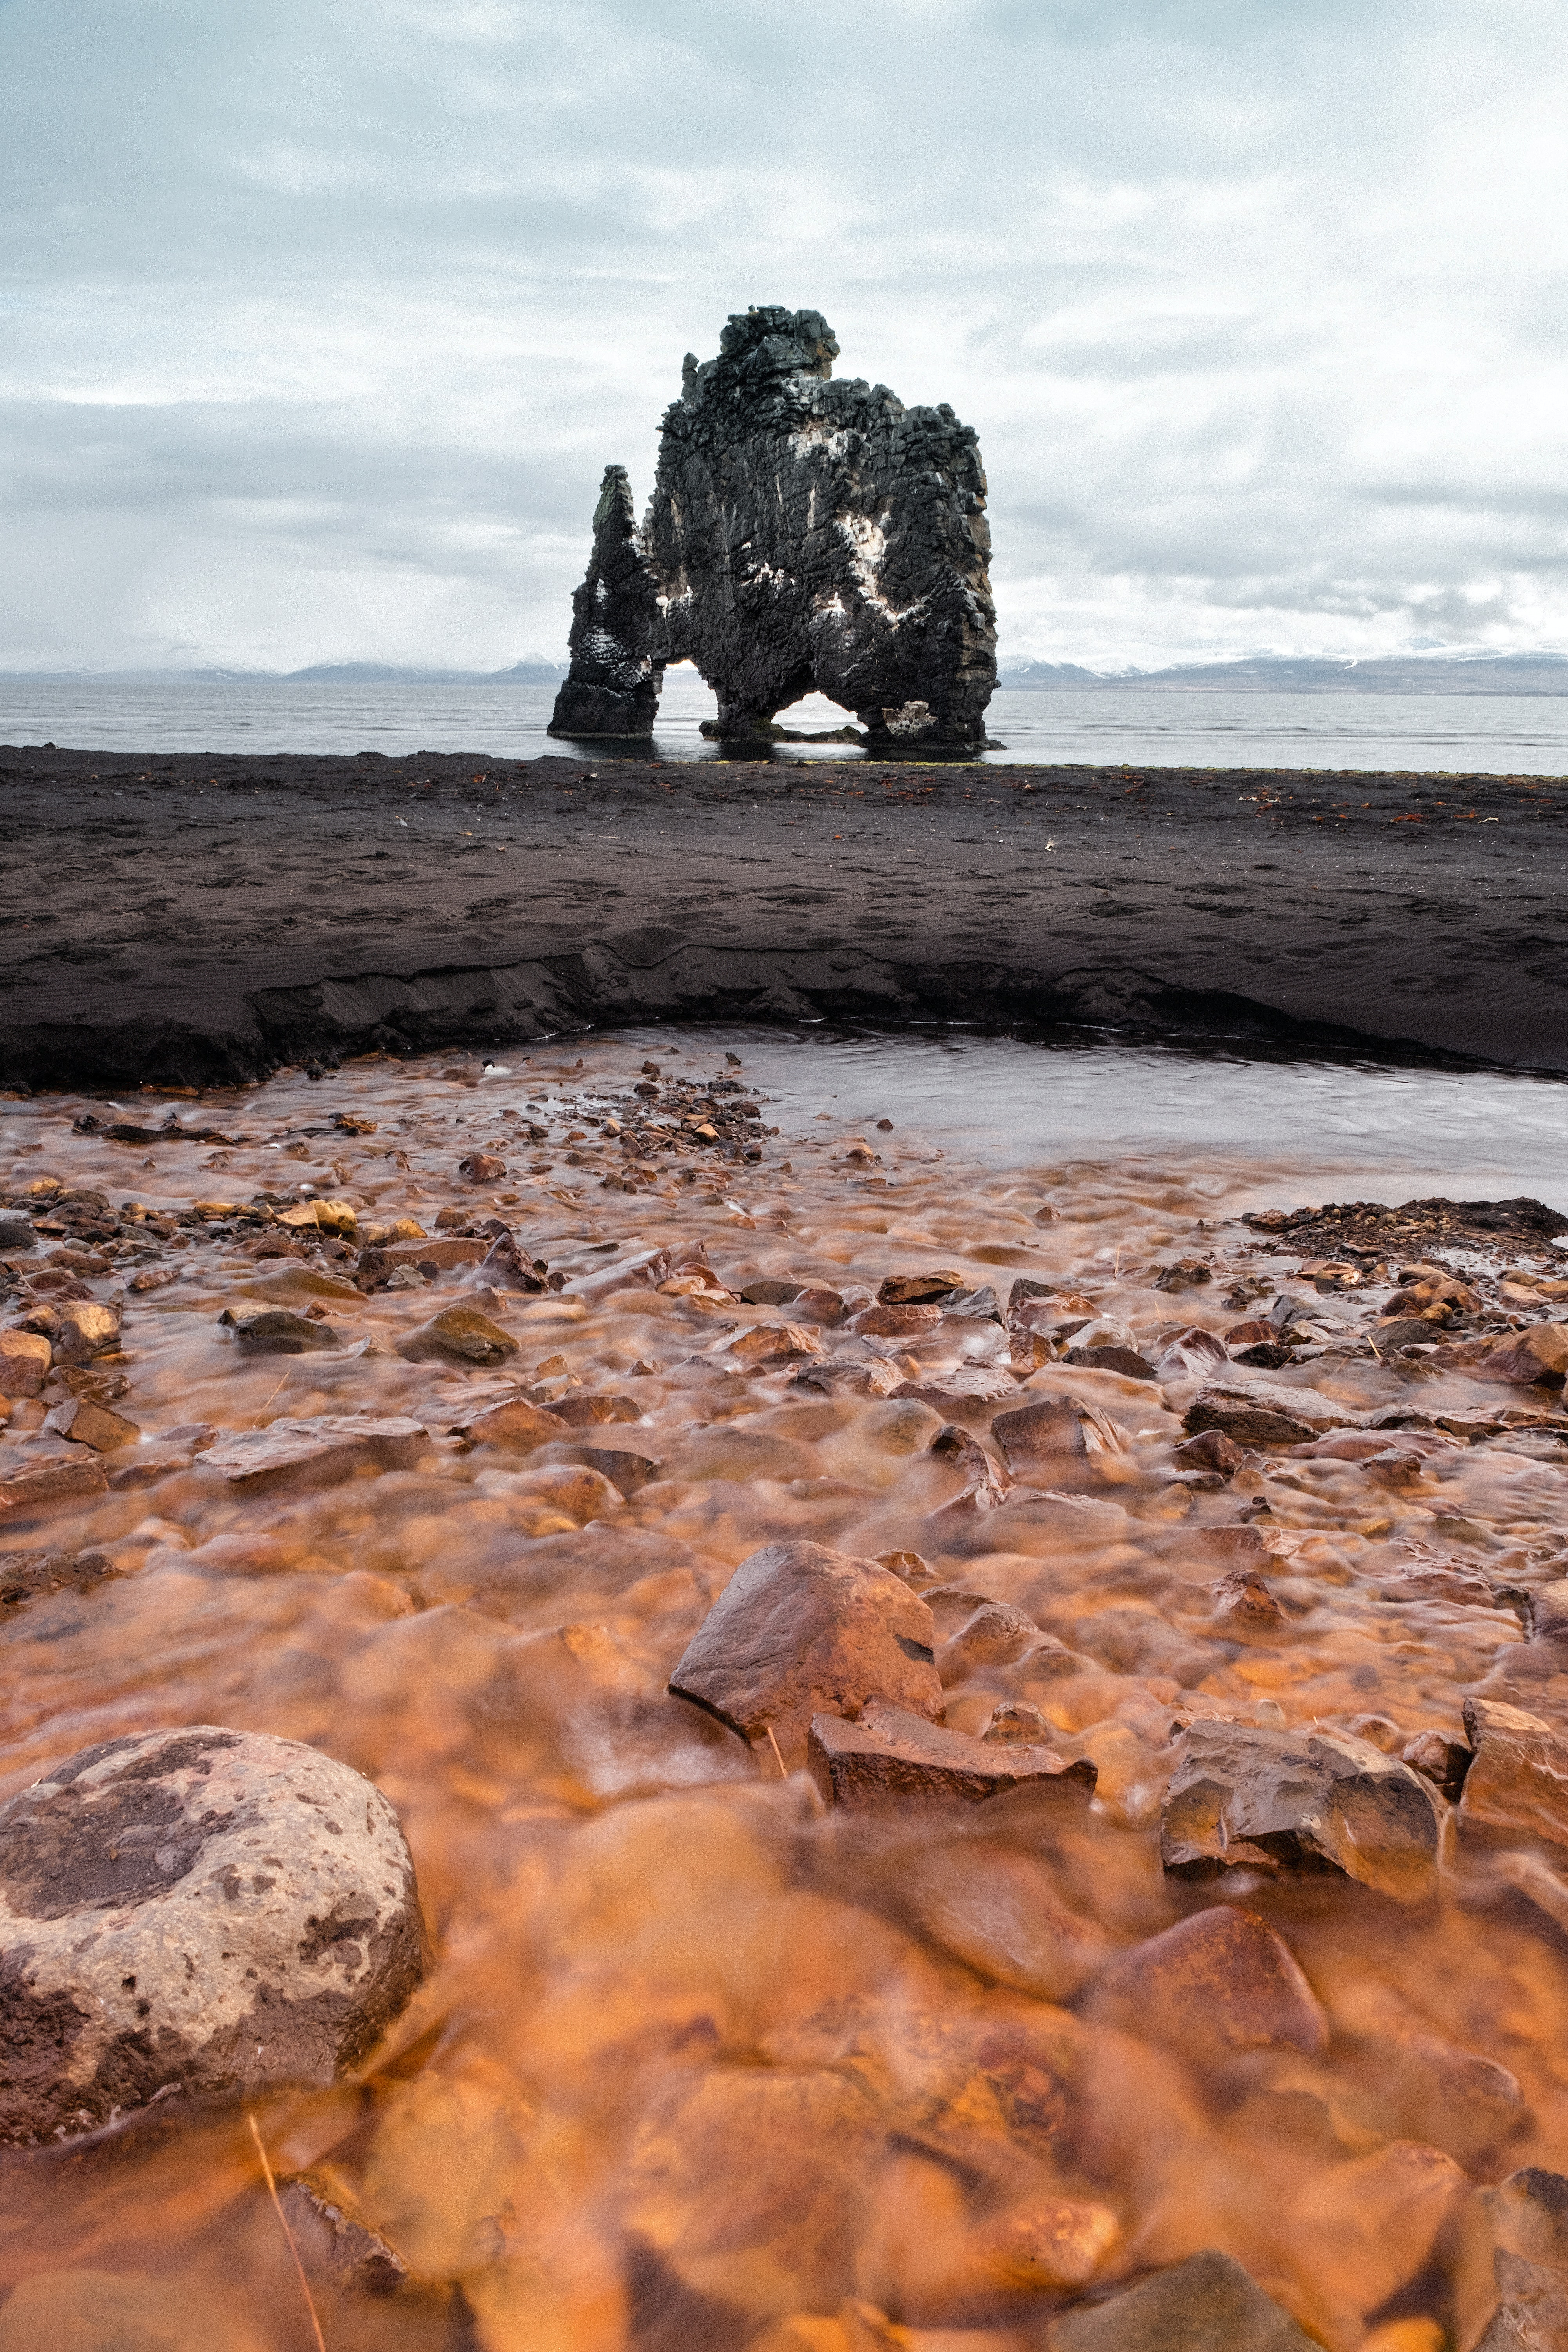 rock formation in body of water